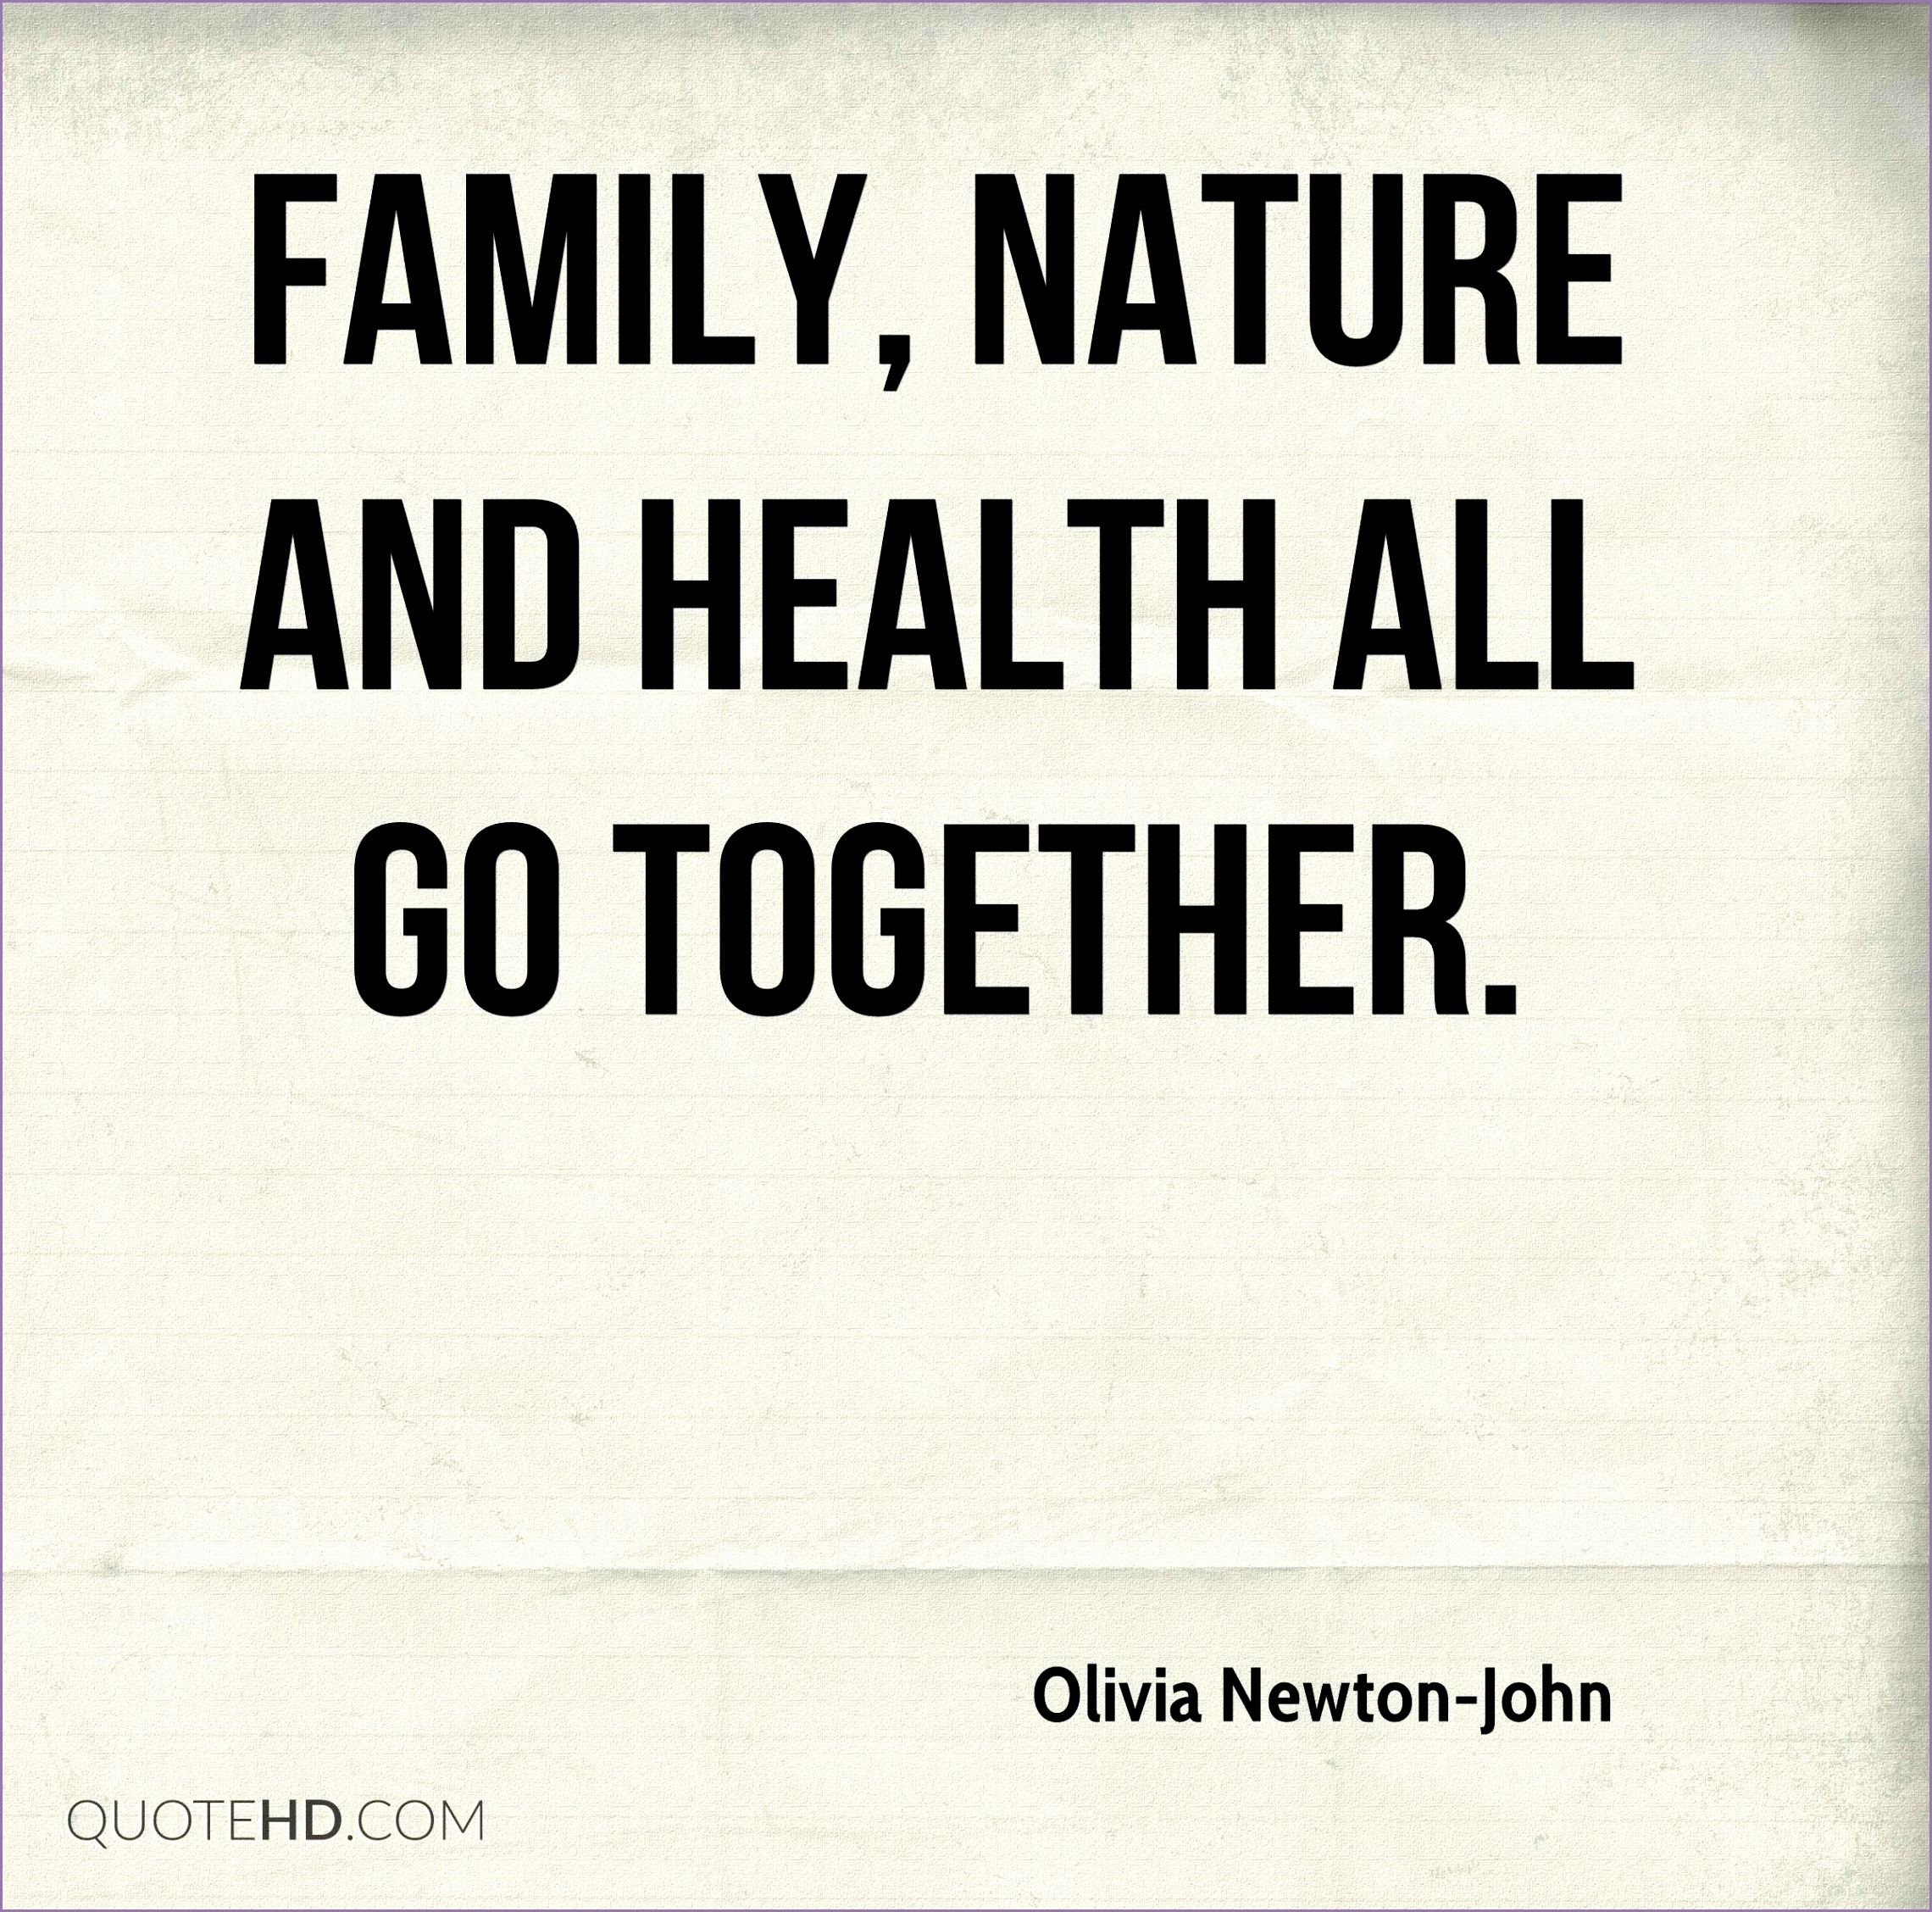 olivia newton john musician quote family nature and health all go